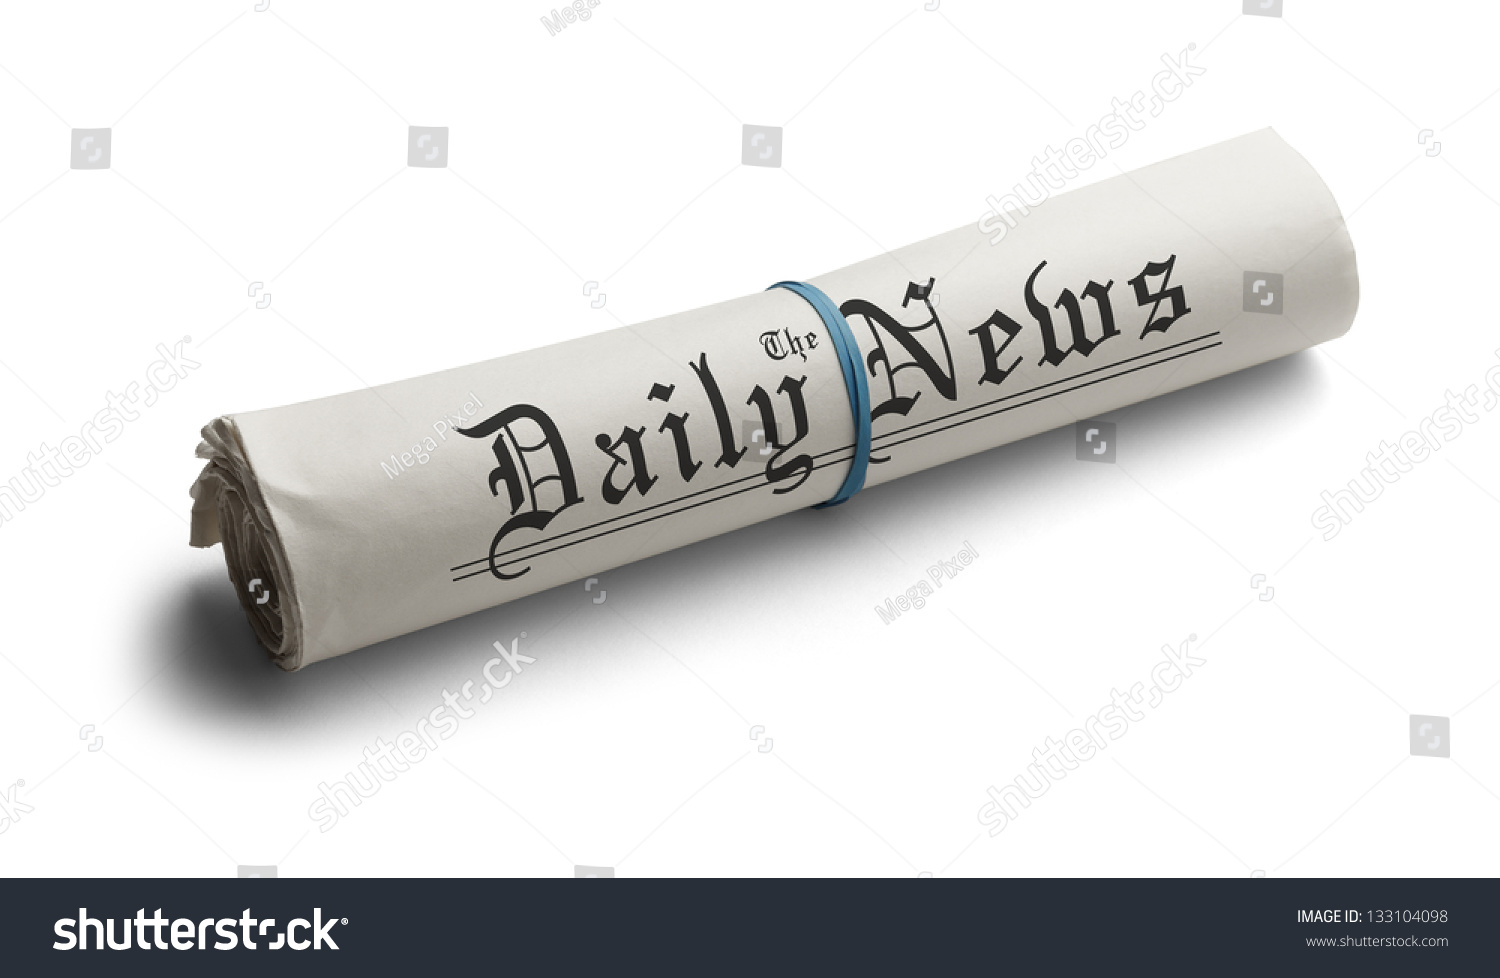 rolled newspaper rubber band daily news stock photo (edit now